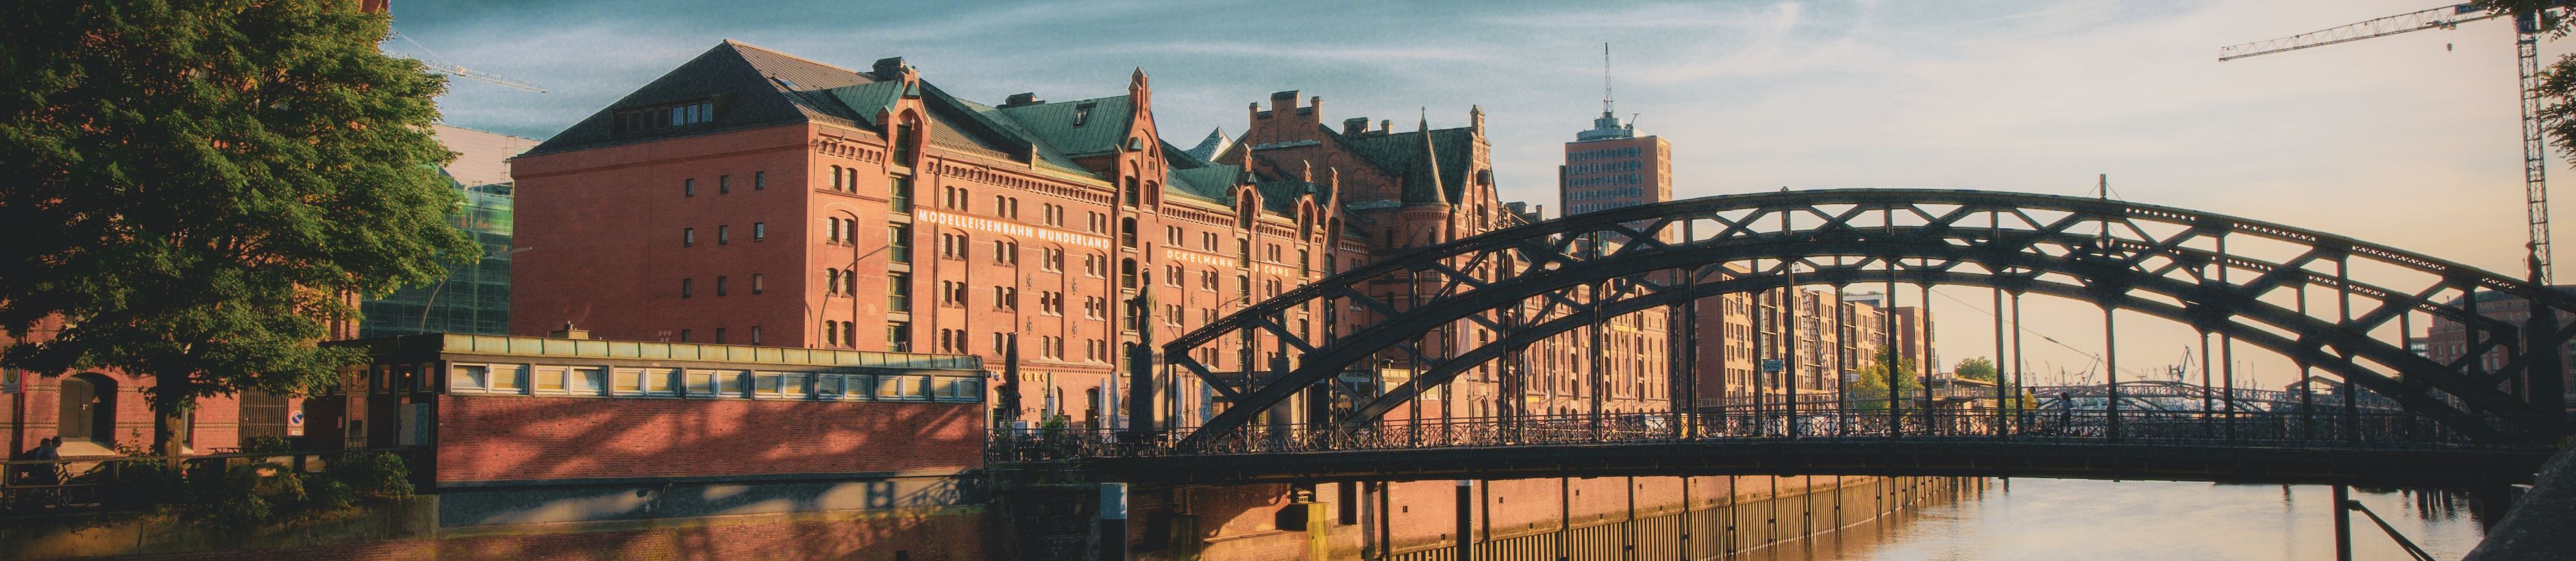 speicherstadt-hamburg-header-madison